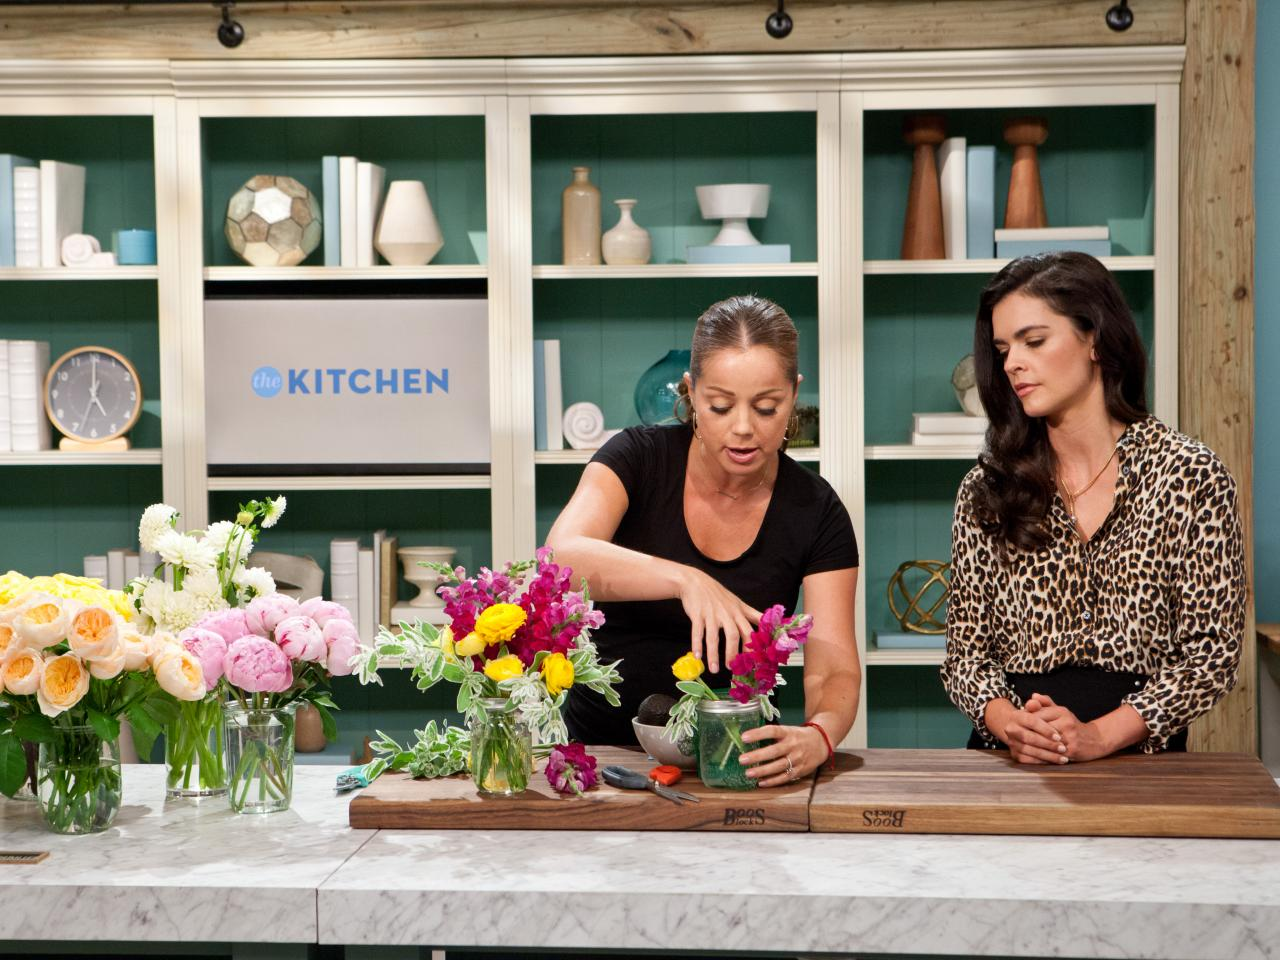 Bloom School | The Kitchen: Food Network | Food Network